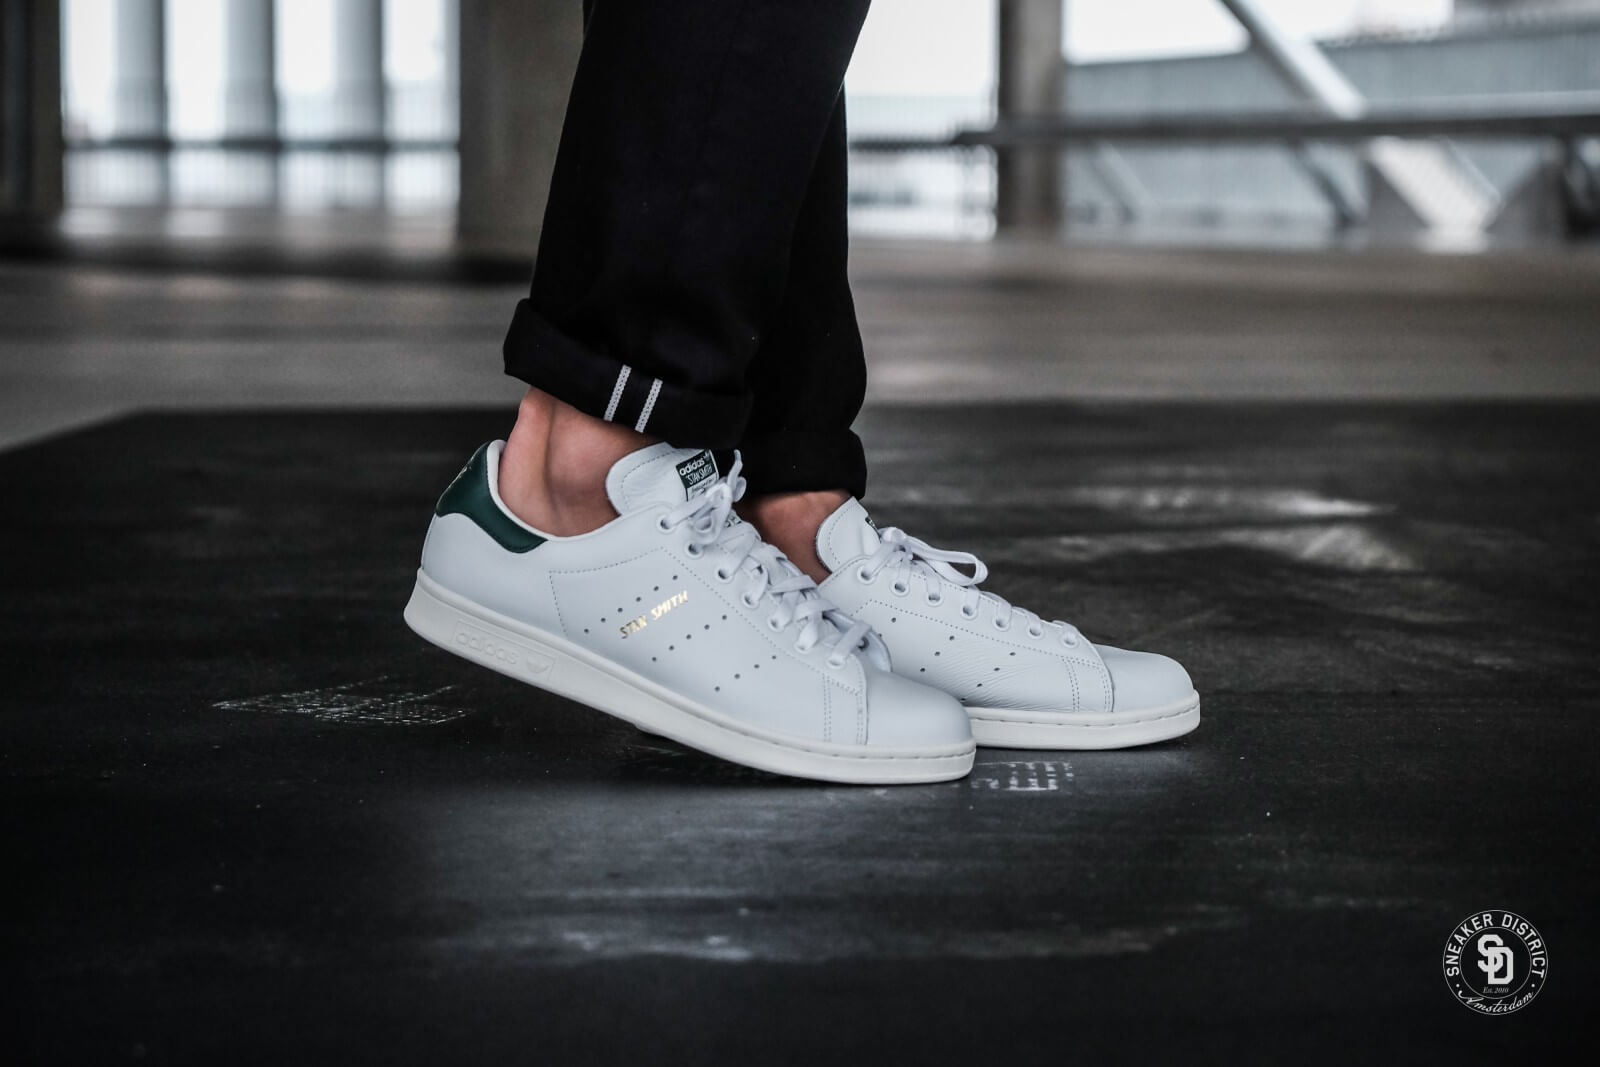 Adidas Stan Smith calzado blanco / CORE Verde cq2871